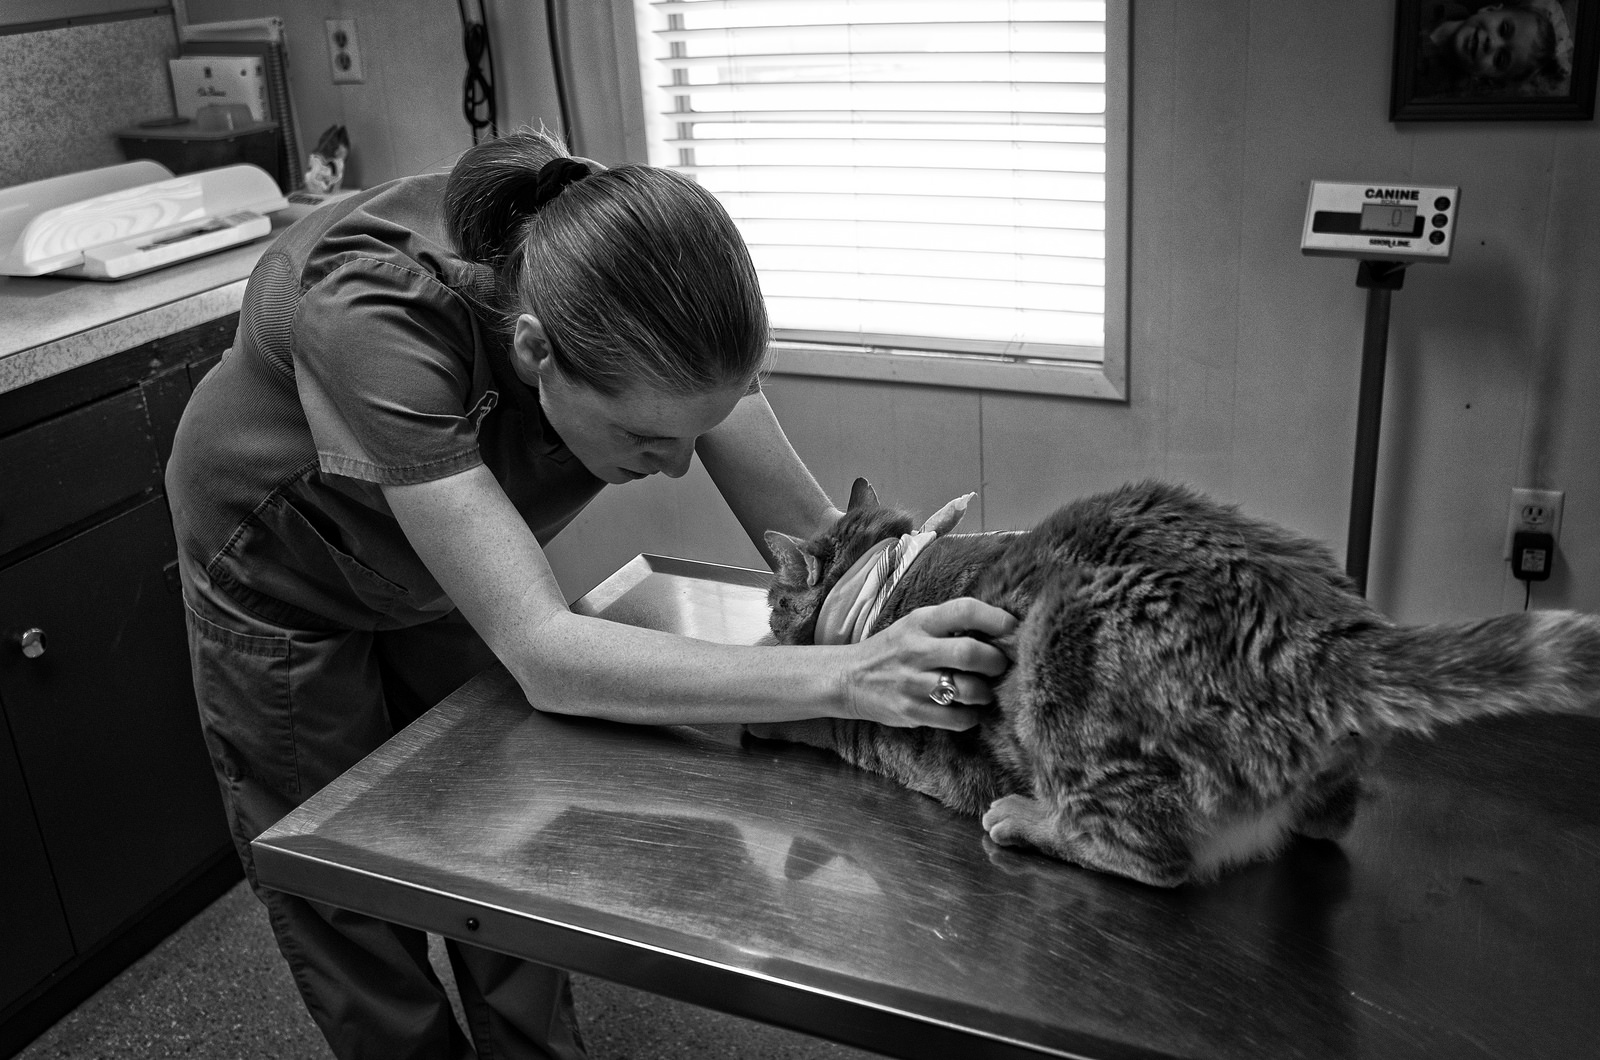 A veterinarian examining a cat.